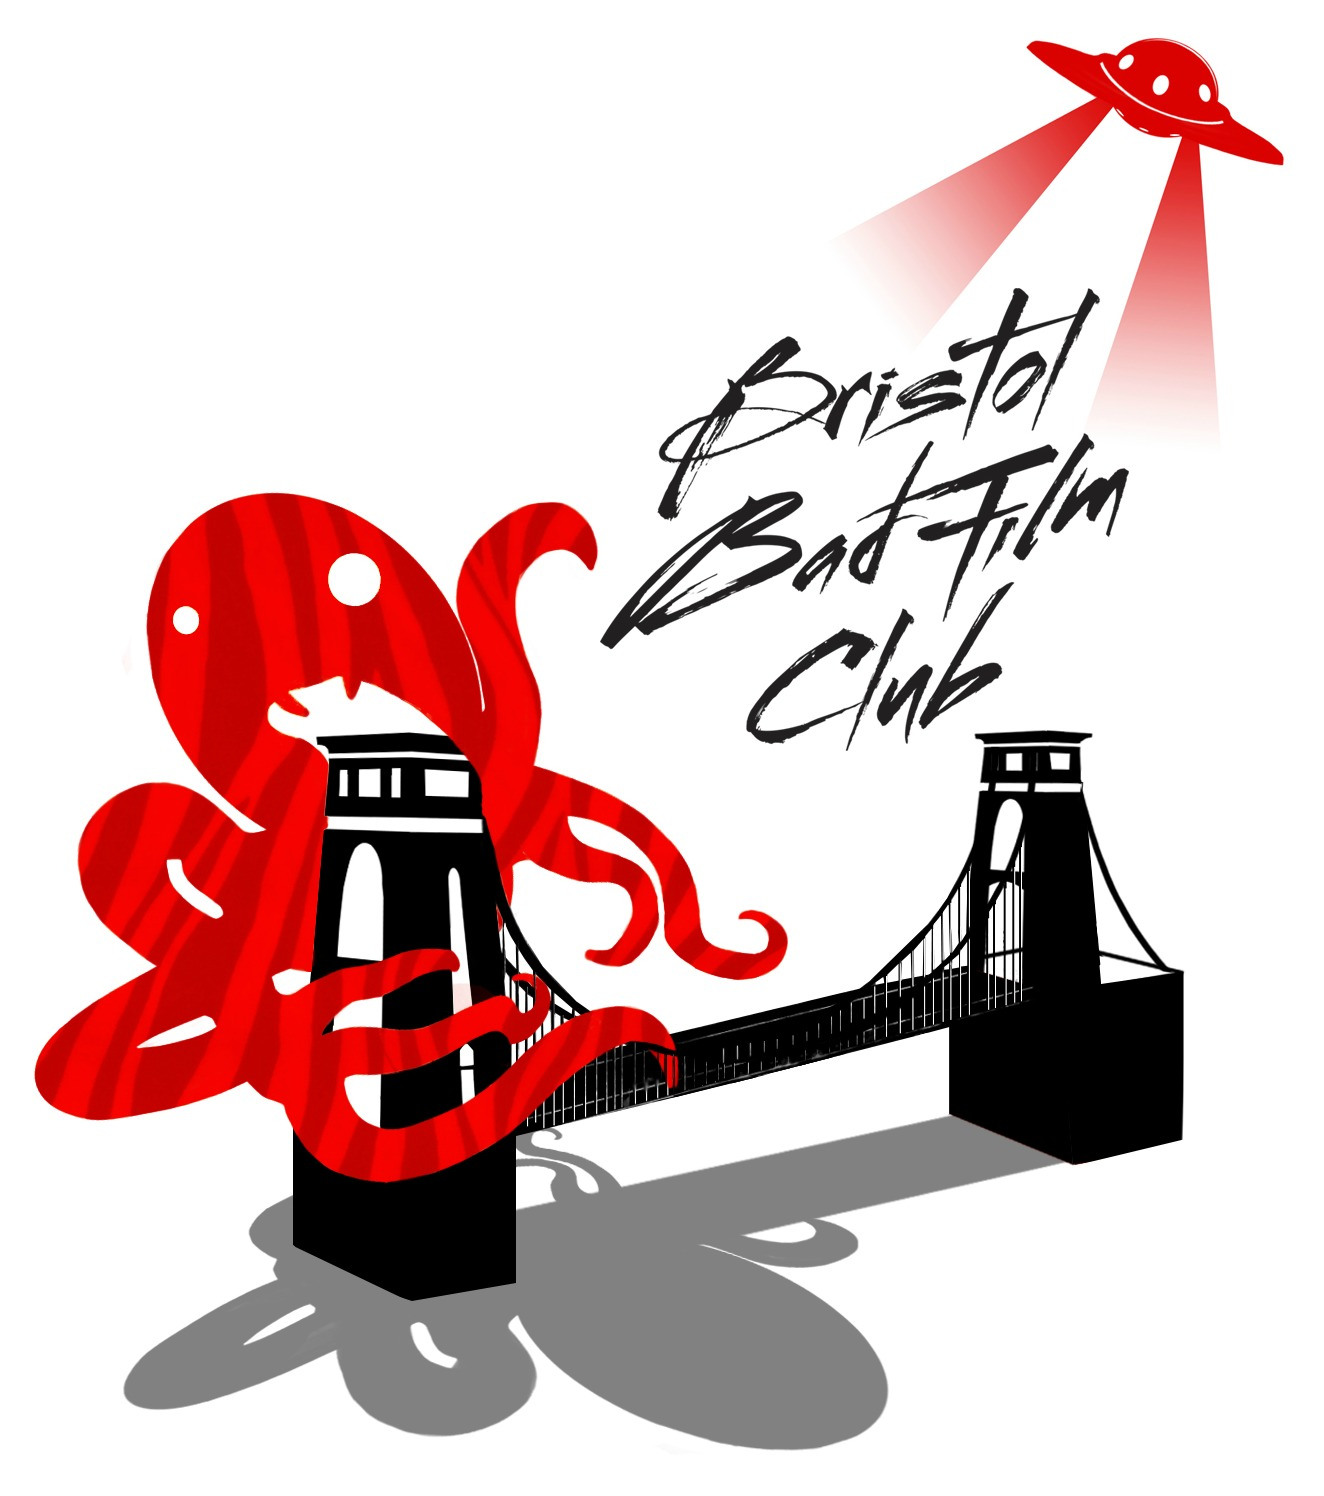 Bristol-Bad-Film-Club